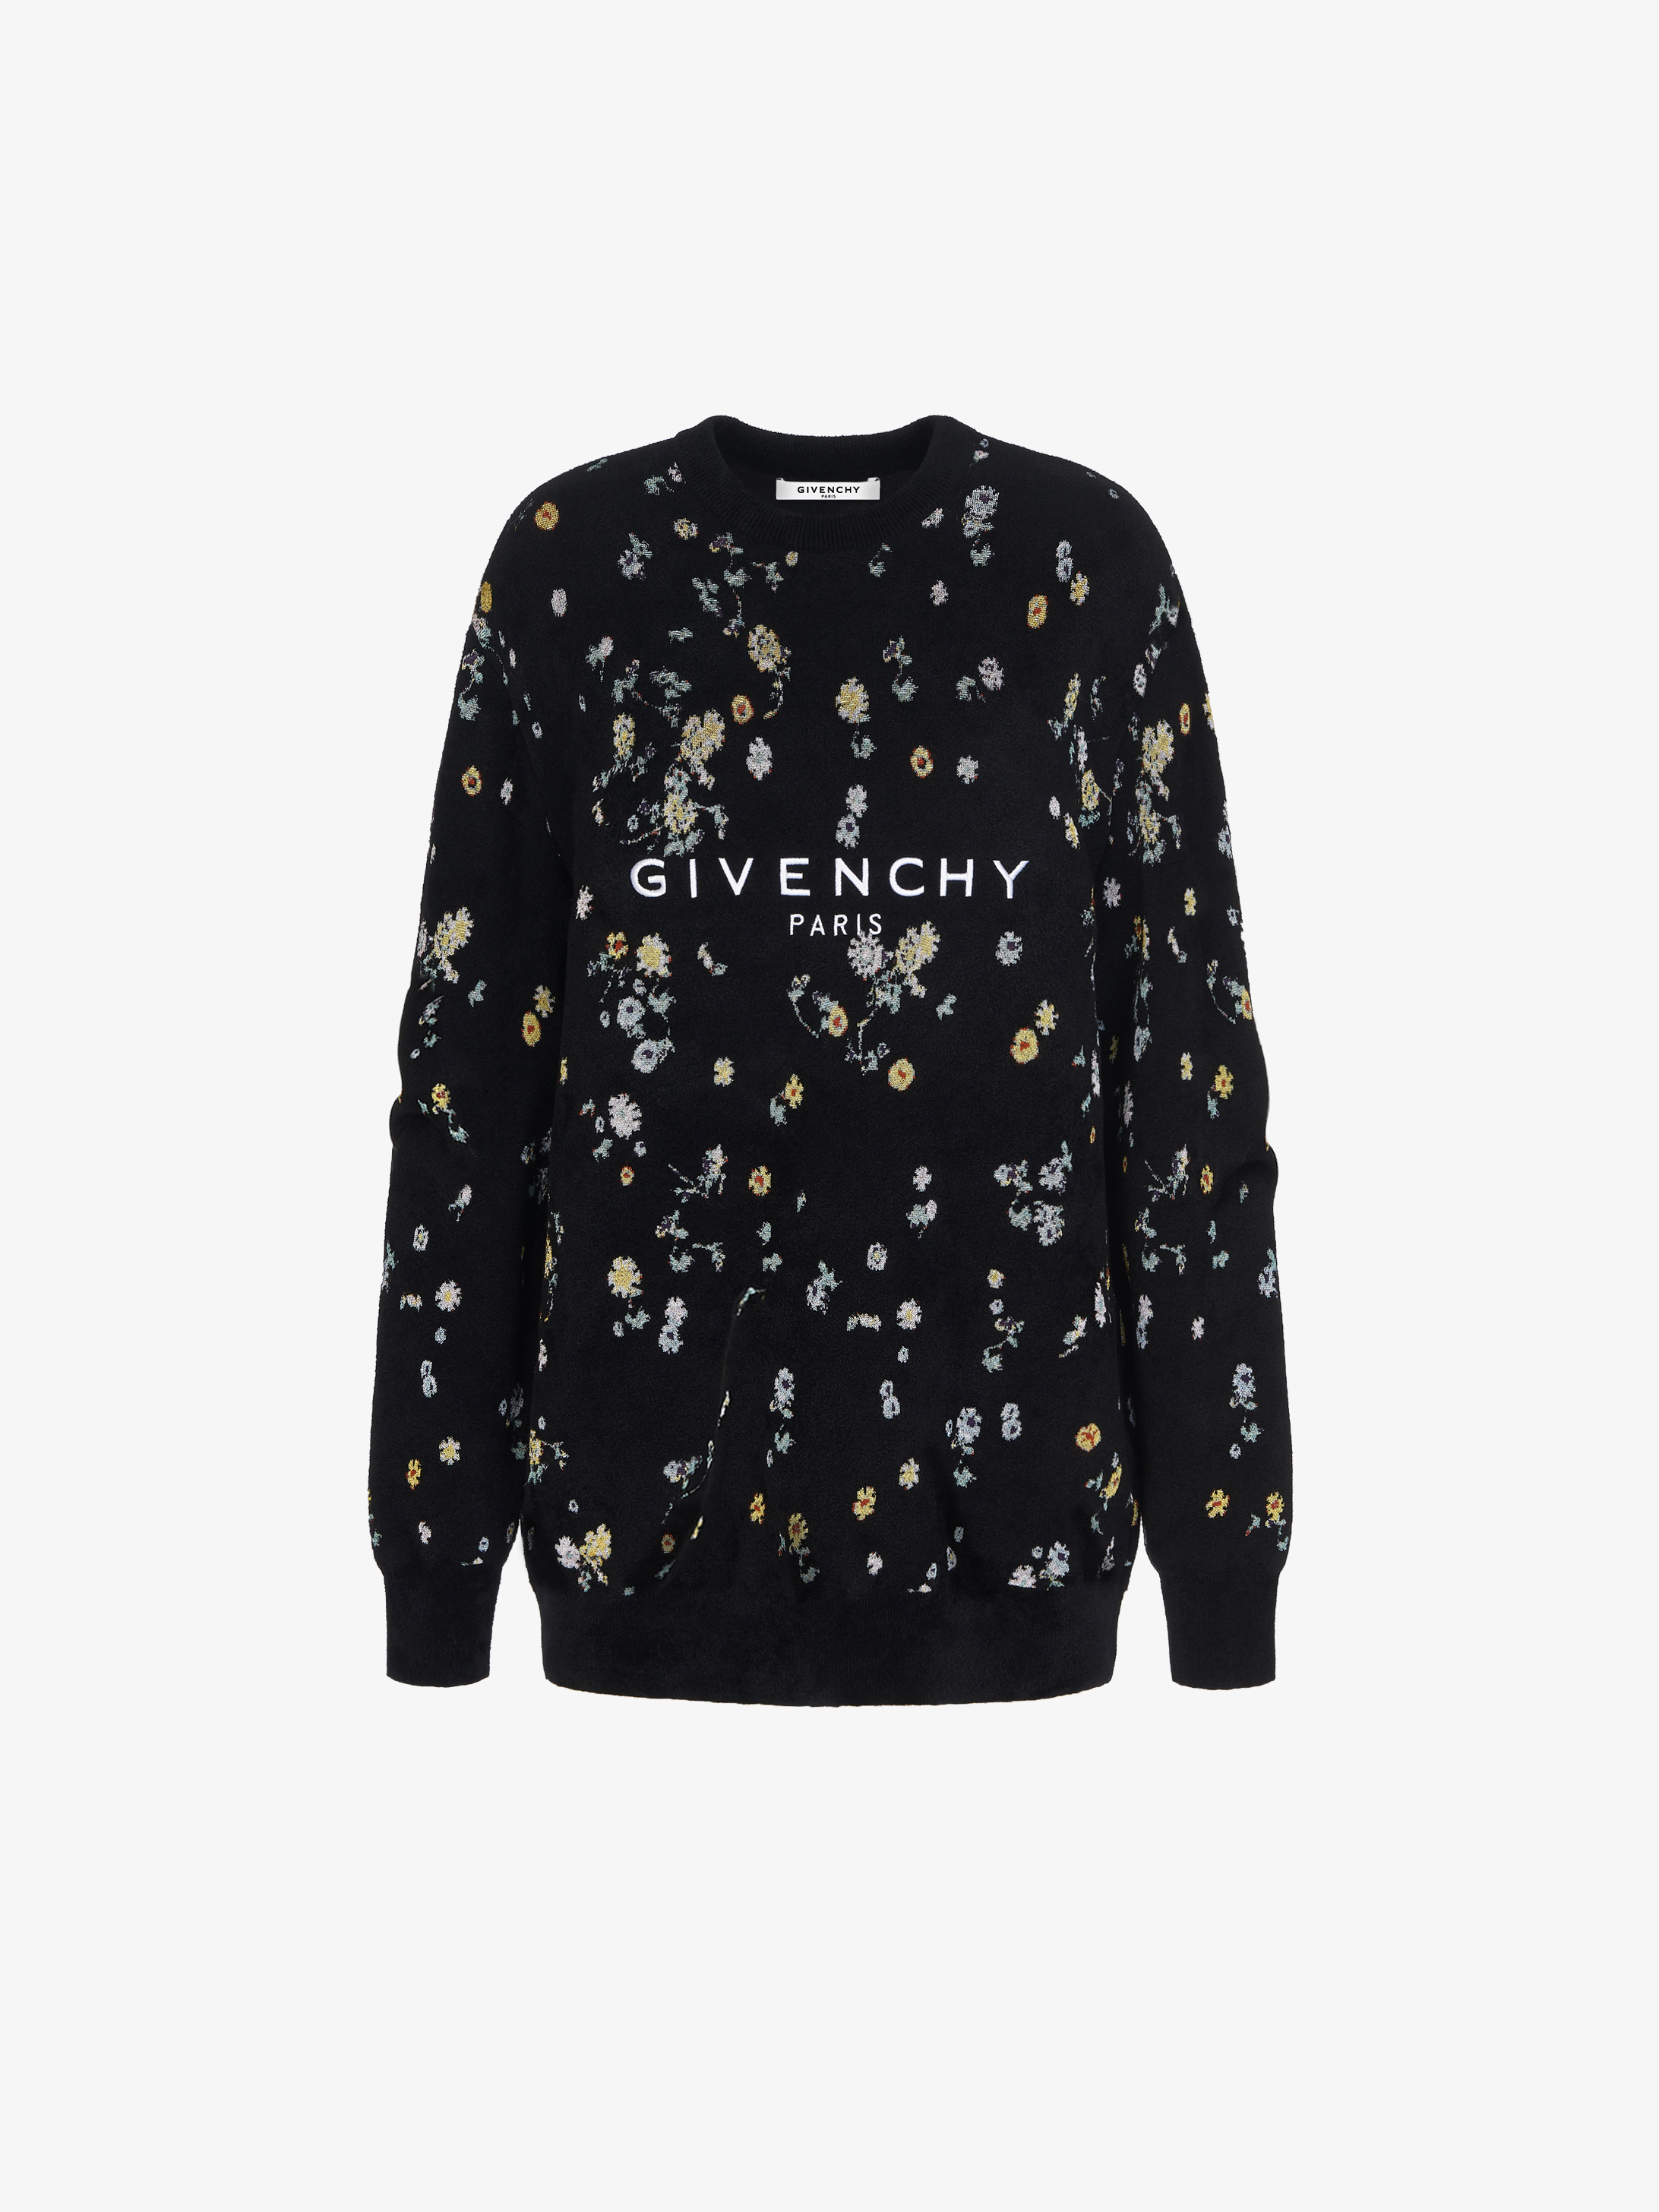 GIVENCHY PARIS oversized sweater with floral pattern